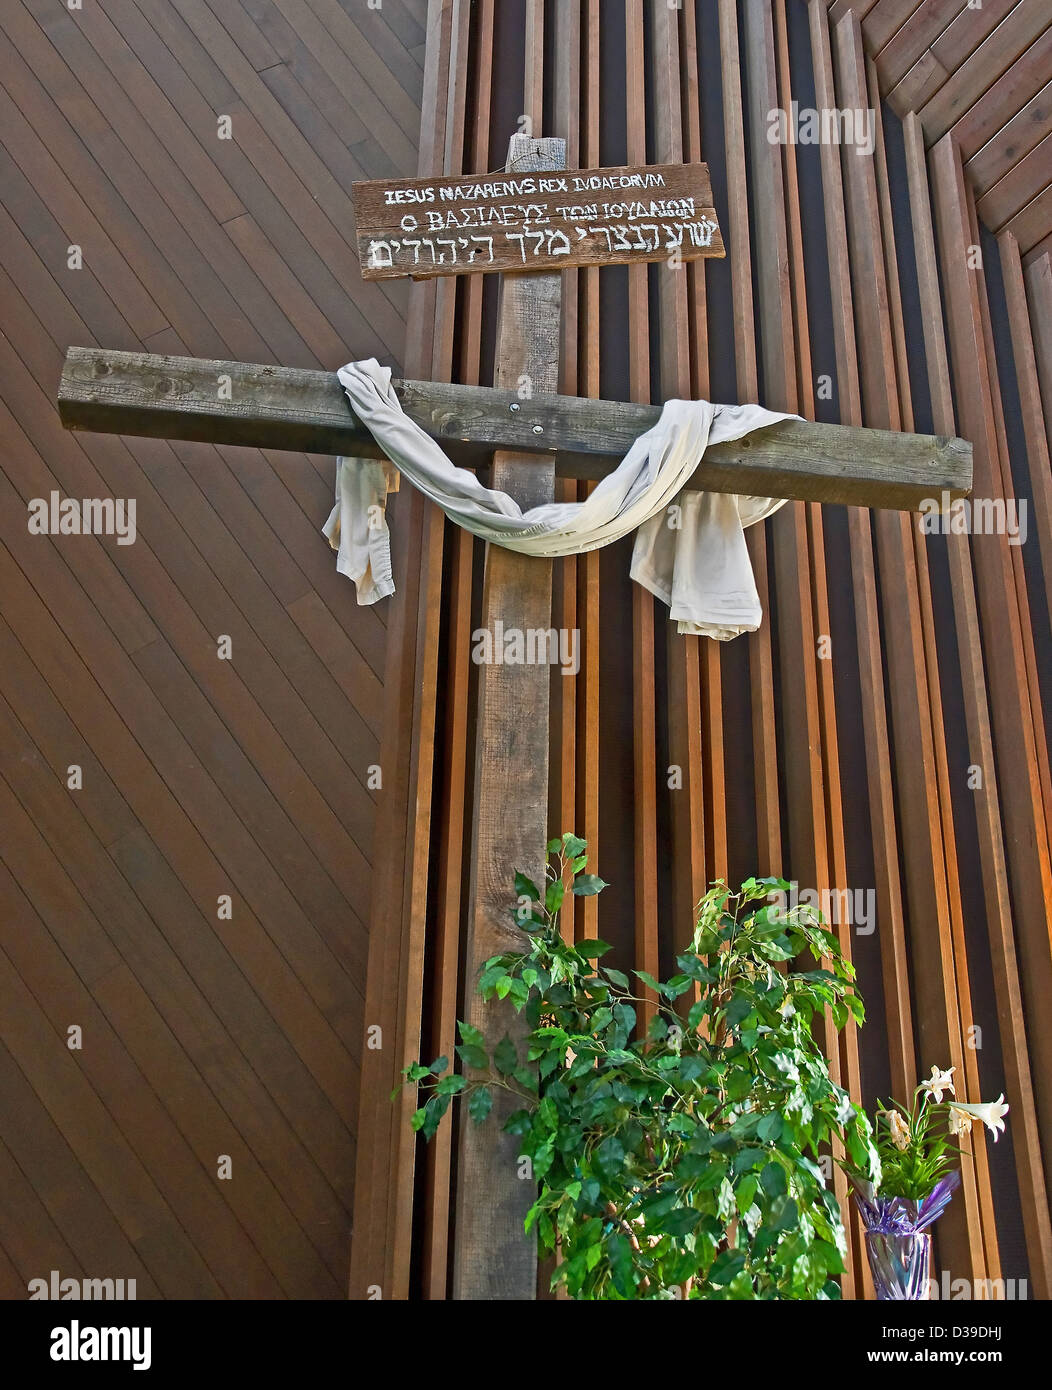 Easter Cross Is Inside A Church With White Cloth Draped Across It Rustic Sign Written In Hebrew Saying King Of The Jews